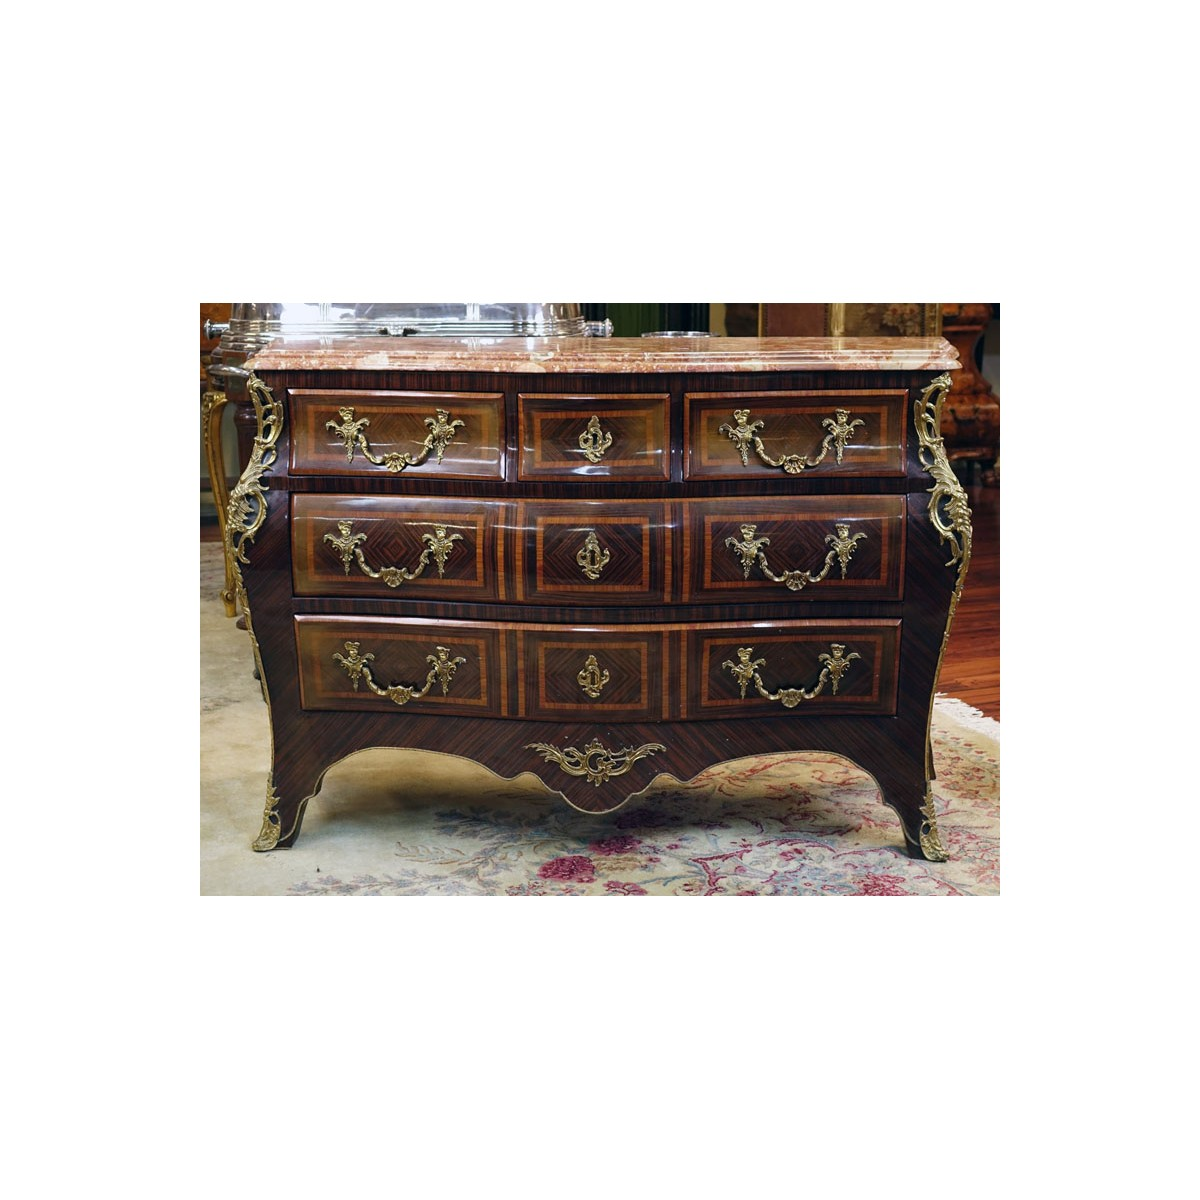 Mid 20th Century Regence Style Gilt Bronze Mounted Kingwood Marquetry Inlaid Marble Top Commode en